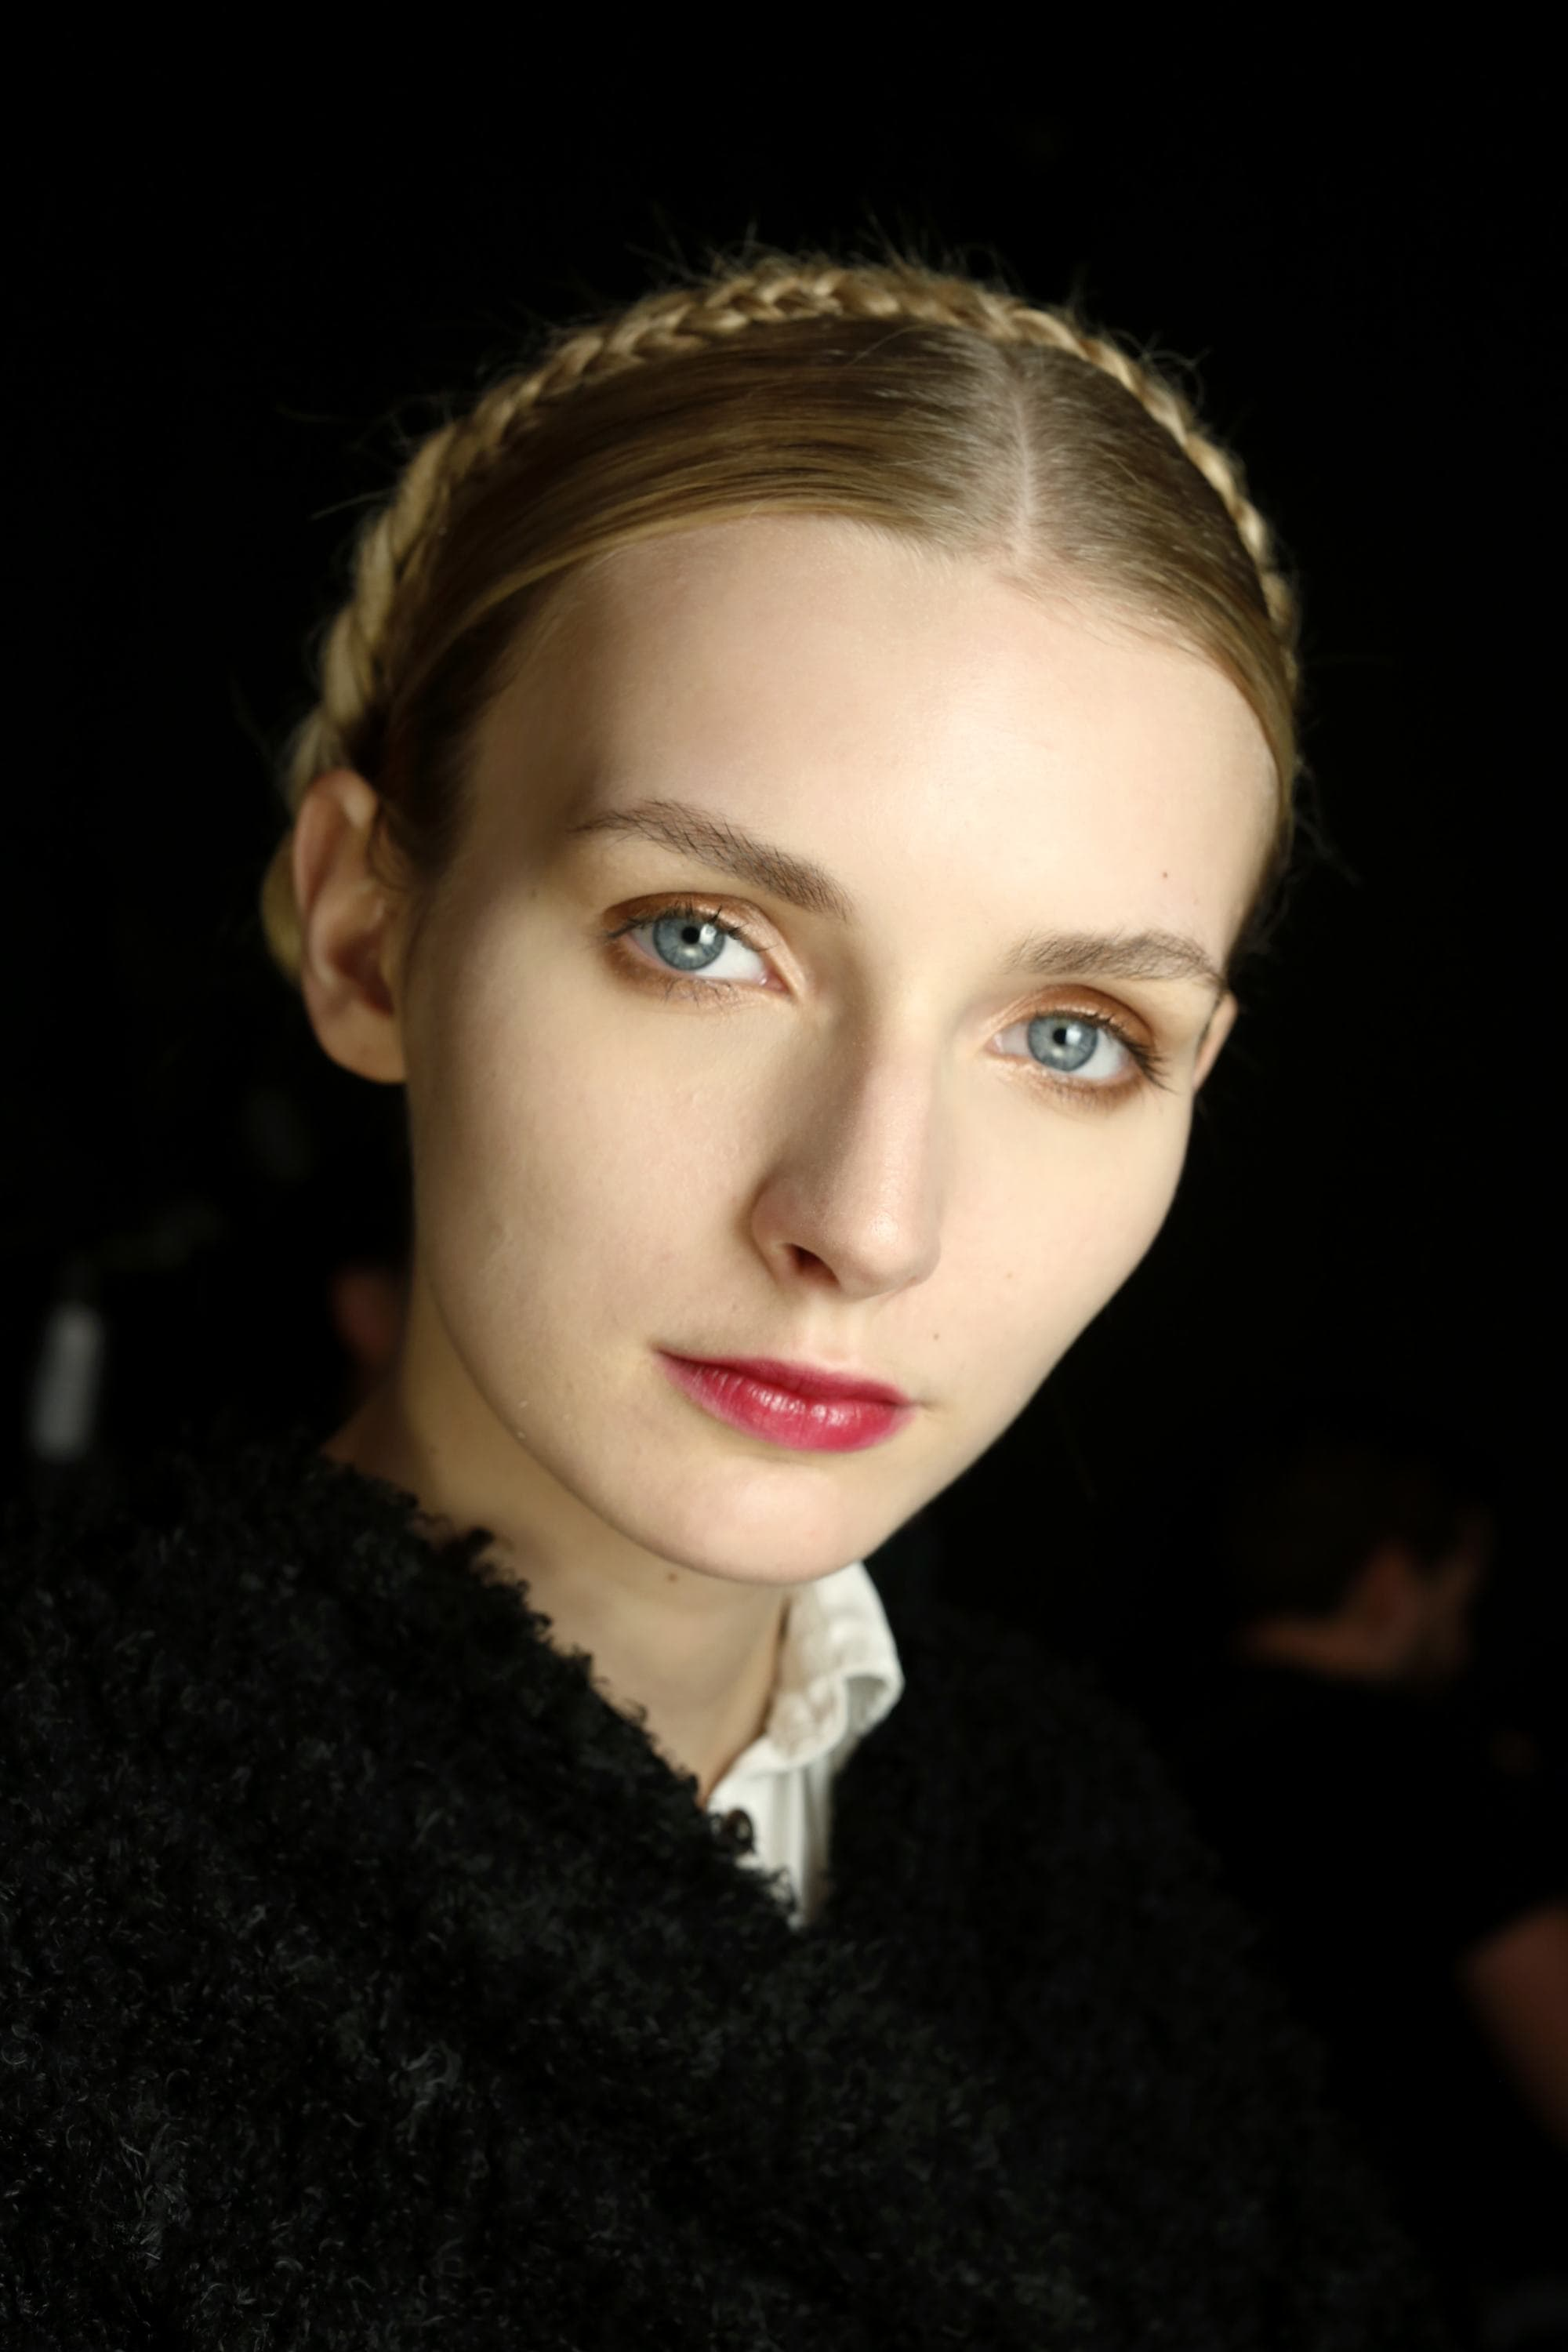 prom hairstyles: close up shot woman with milkmaid braid hairstyle, posing backstage